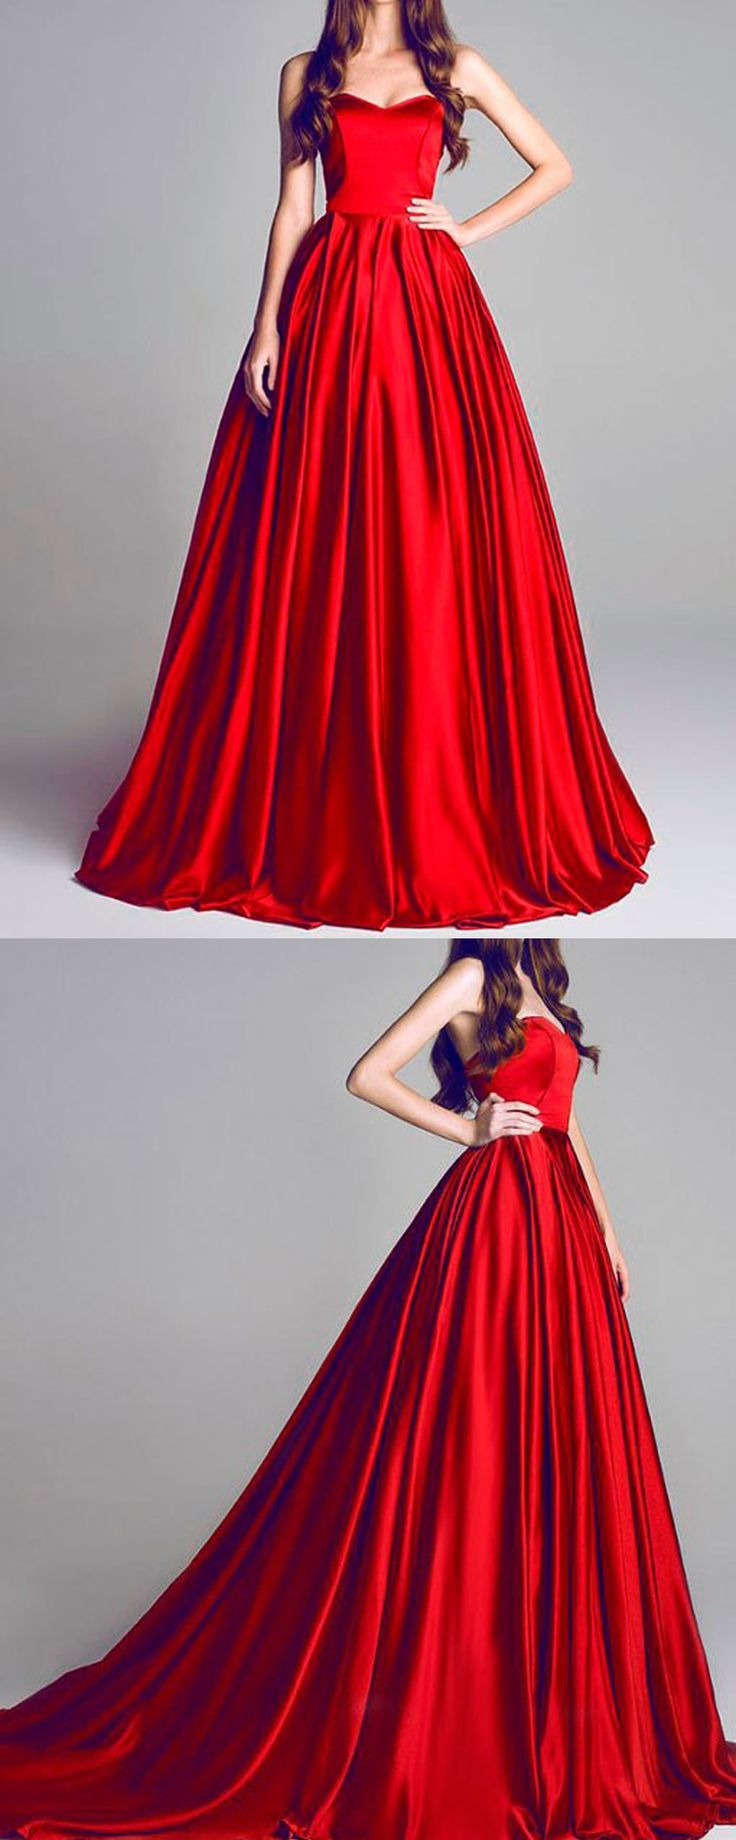 best prom gowns images on pinterest prom dresses ball gowns